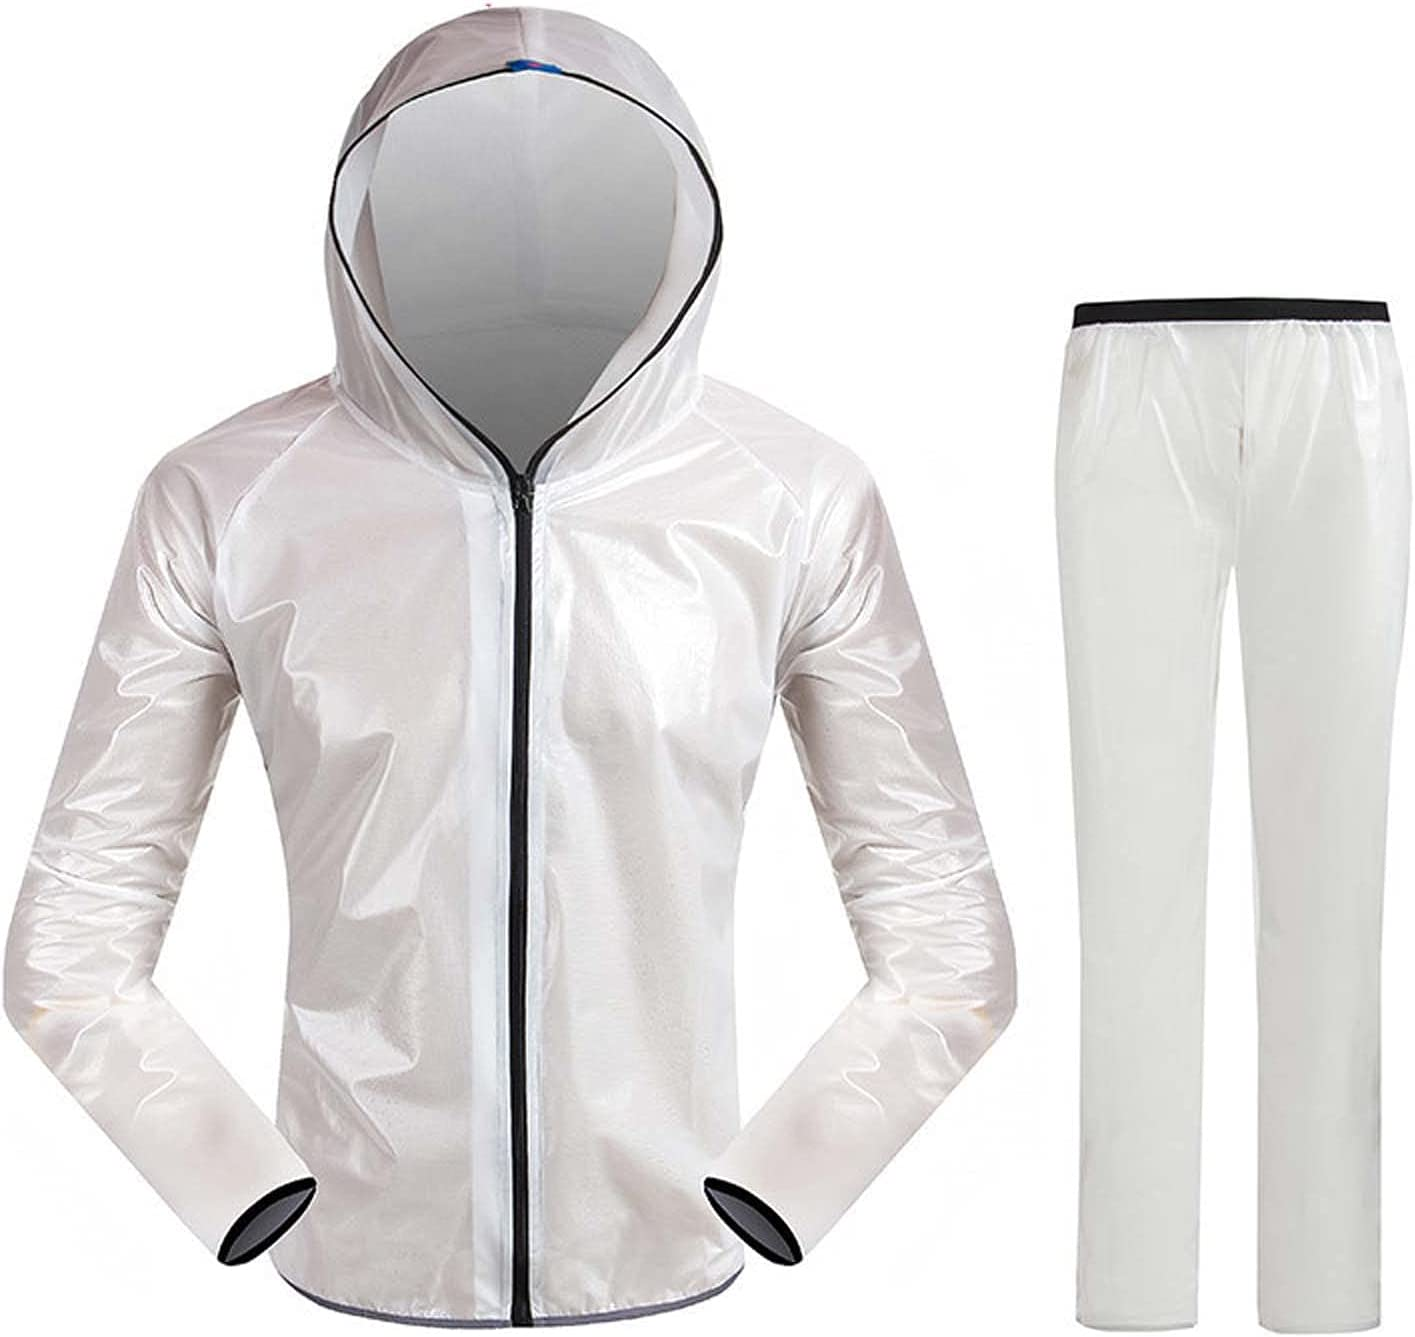 FHGH Adult Split Raincoat, Waterproof Cycling Raincoat and Trousers, for Cycling Climbing Fishing Takeaway,C,Medium